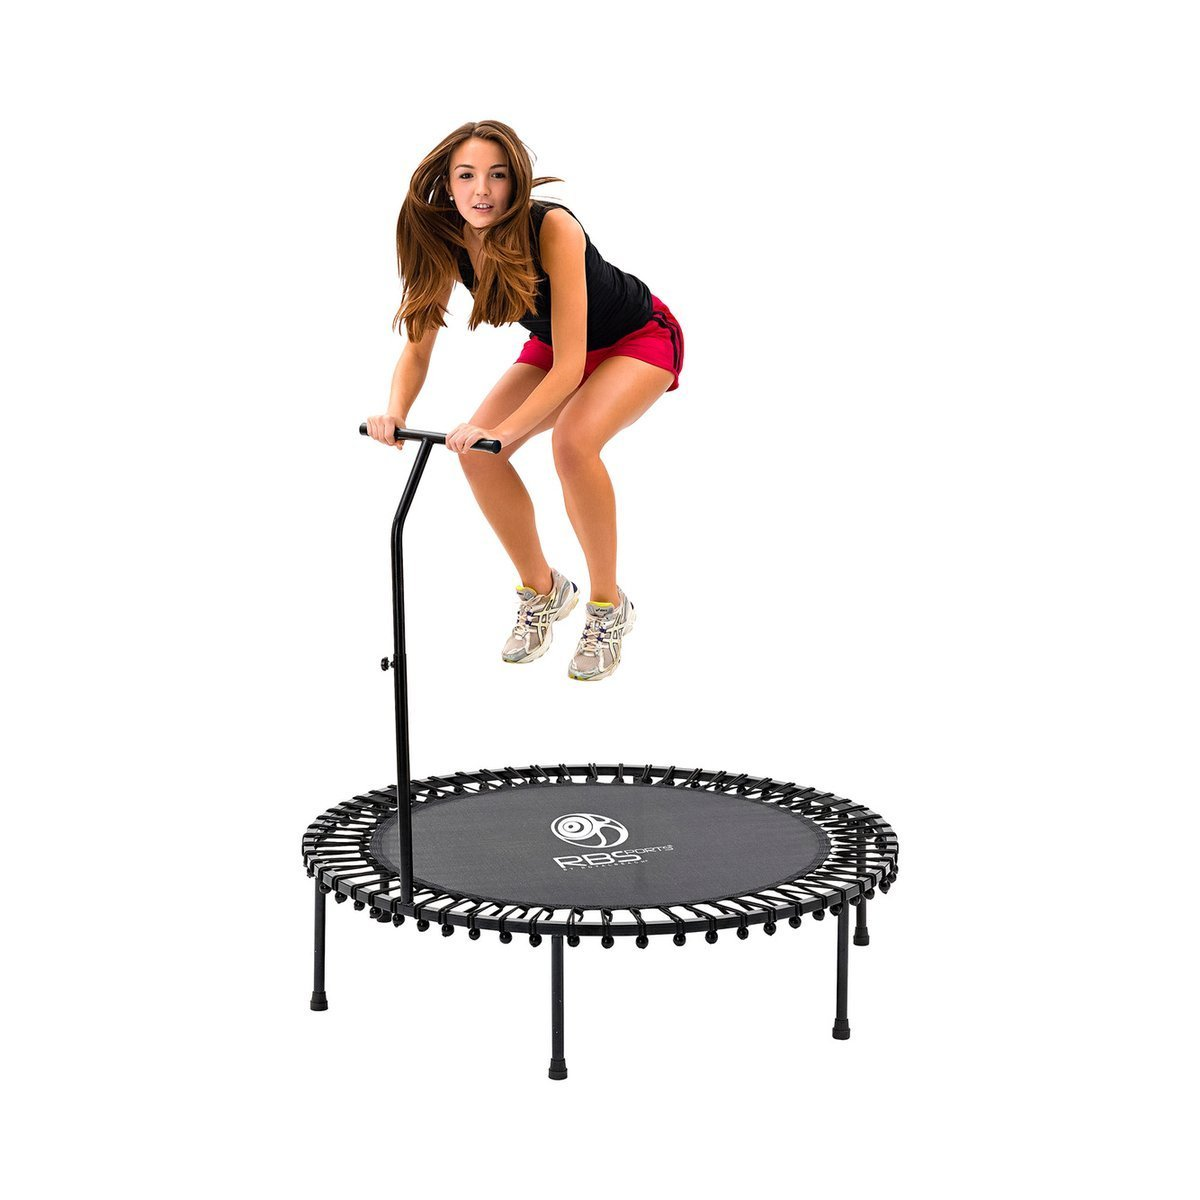 fitness trampolin test 2018 die testsieger im vergleich. Black Bedroom Furniture Sets. Home Design Ideas